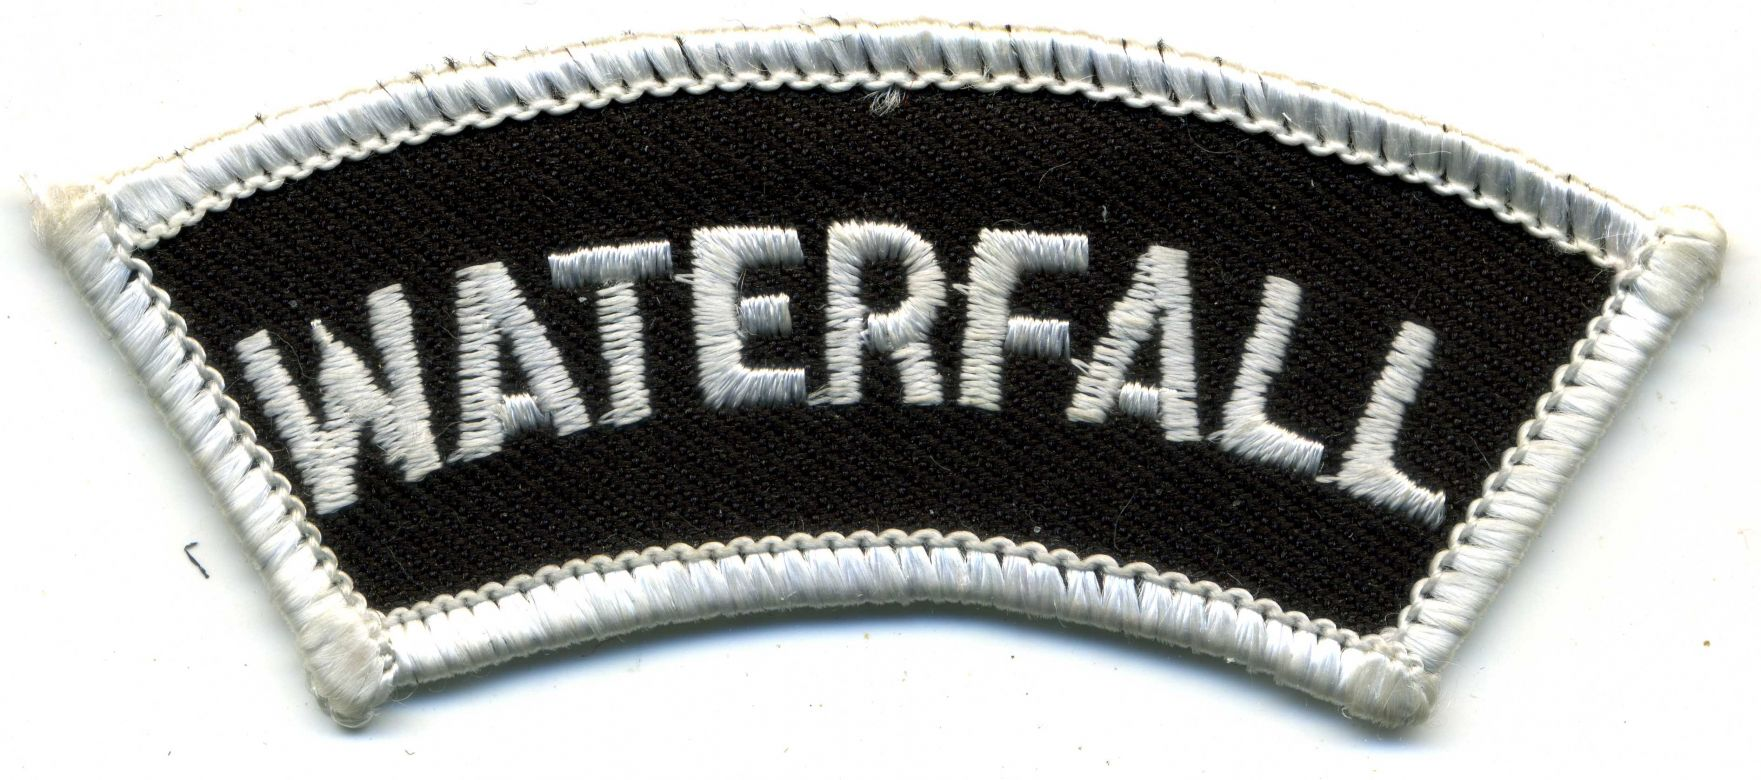 1973 - Waterfall patch